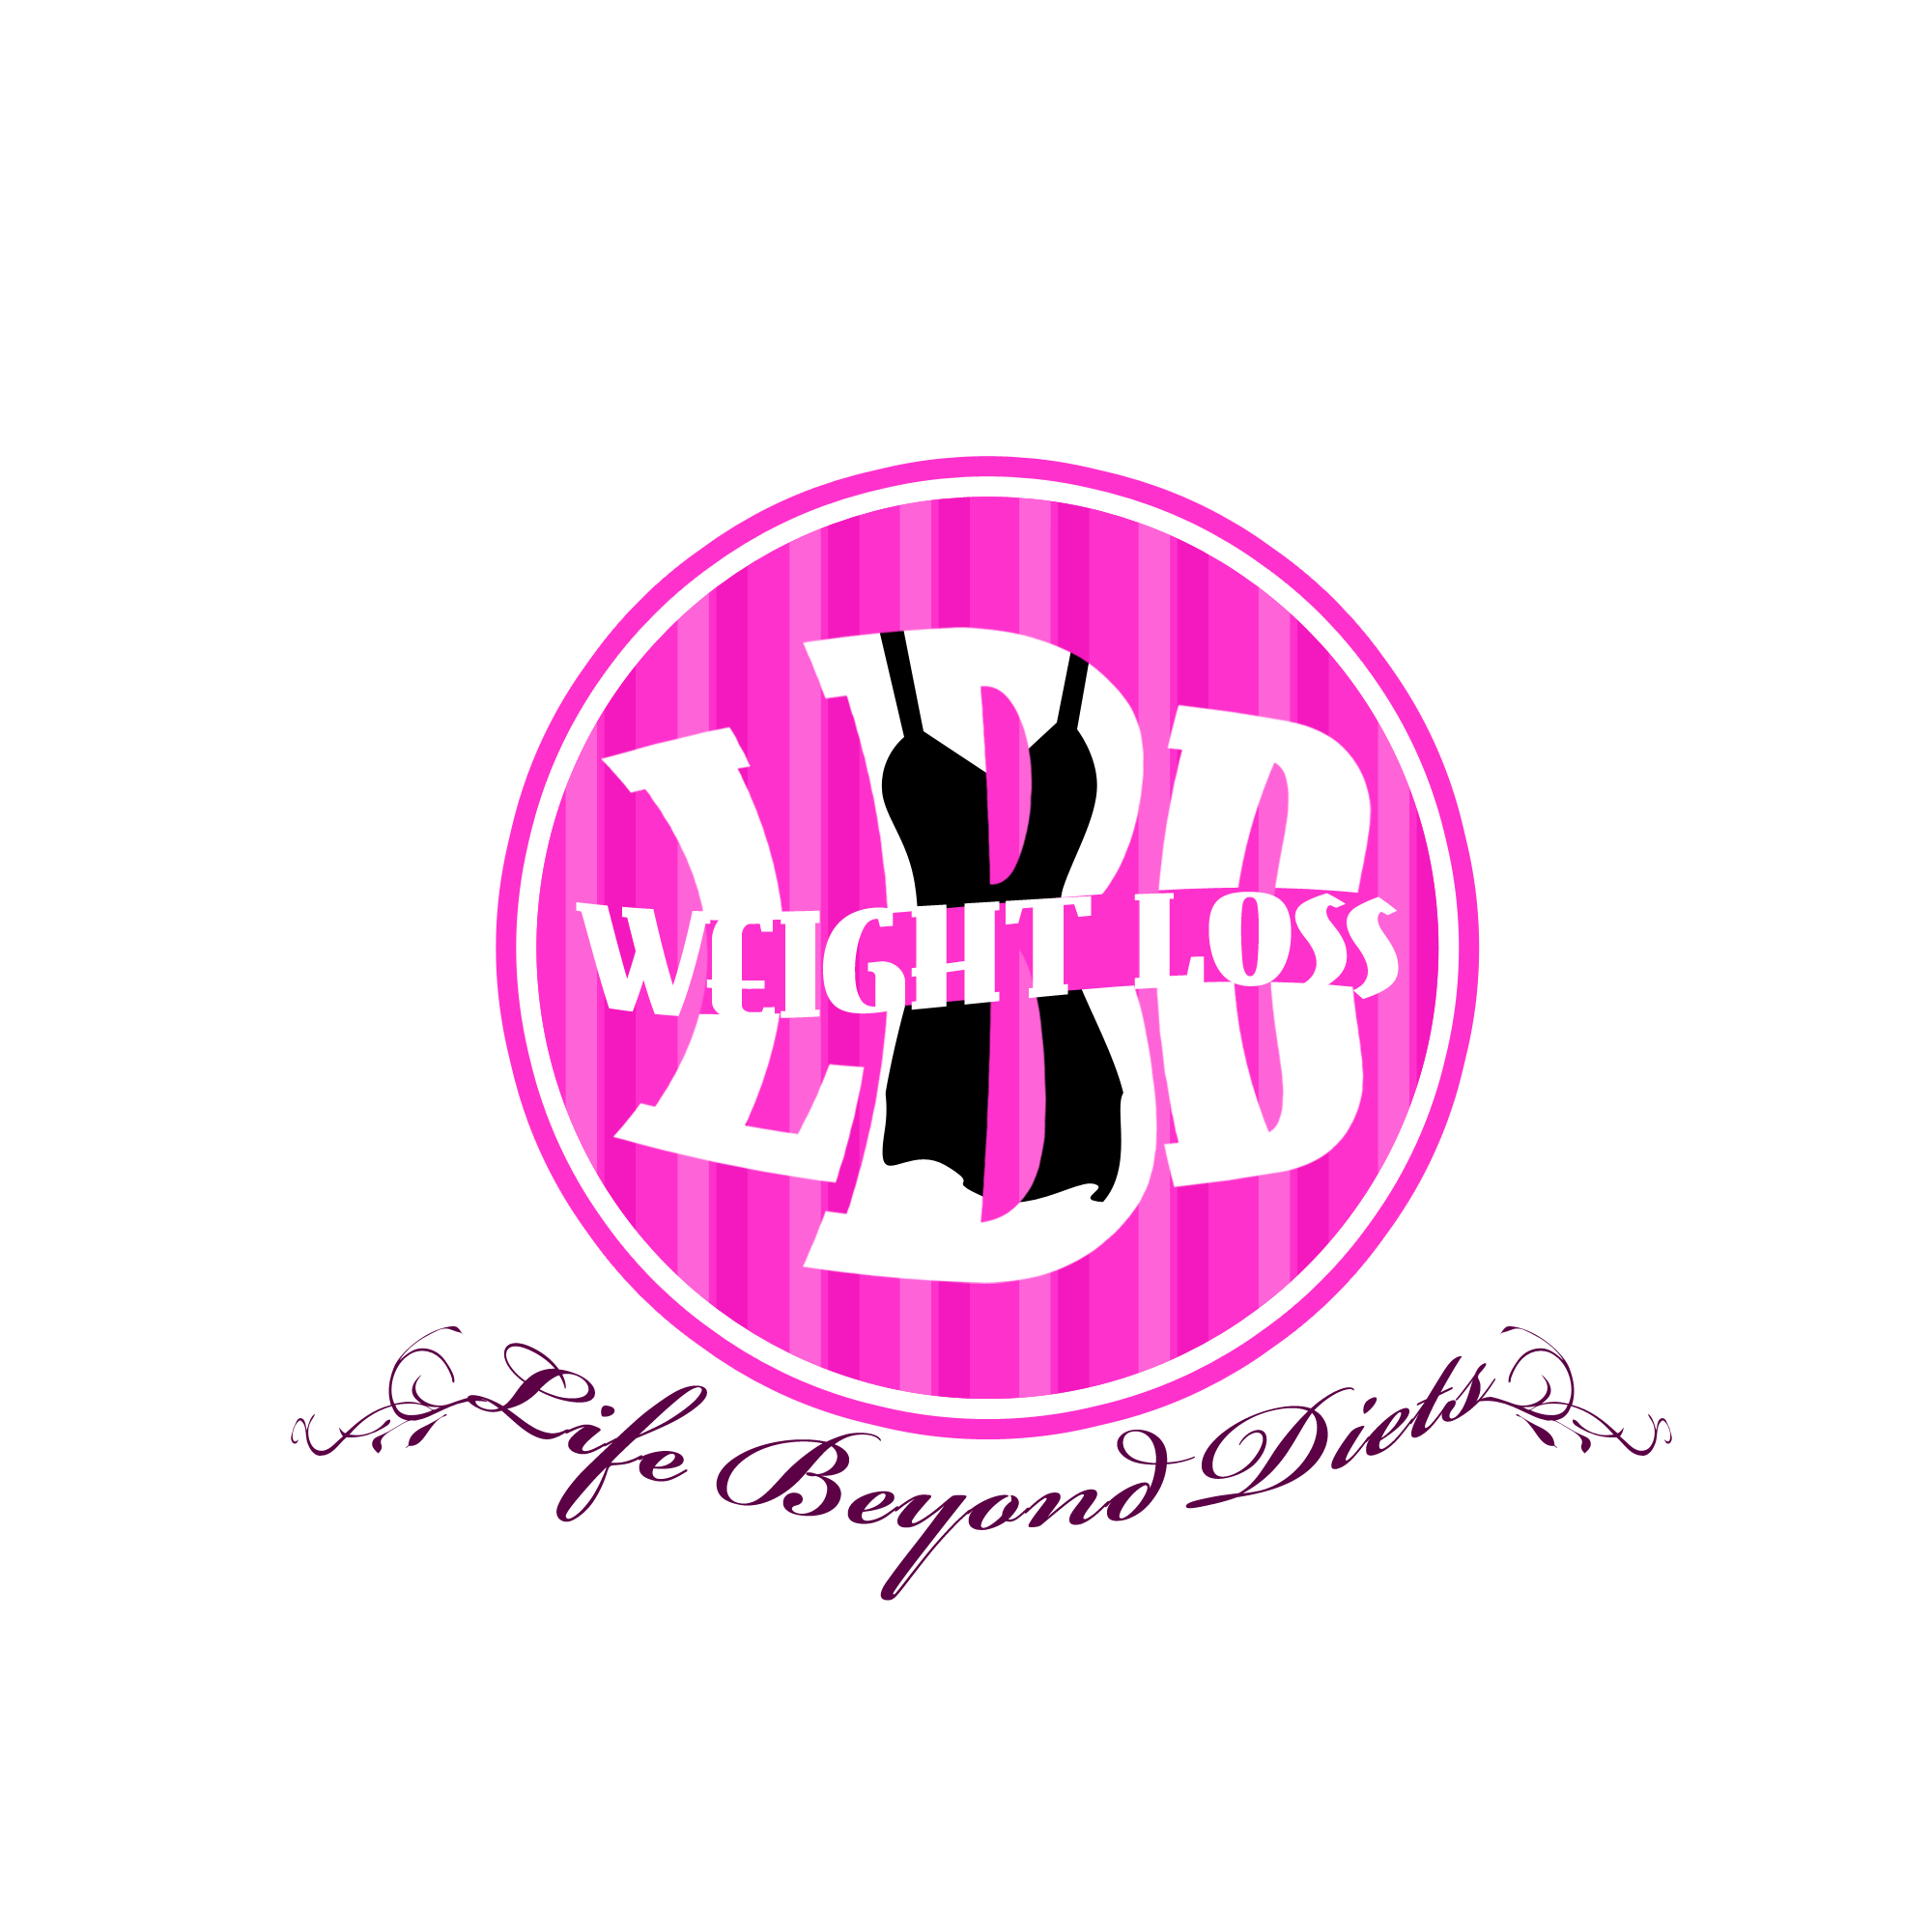 Logo Design by Kenneth Joel - Entry No. 70 in the Logo Design Contest Imaginative Logo Design for LBD Weight Loss.